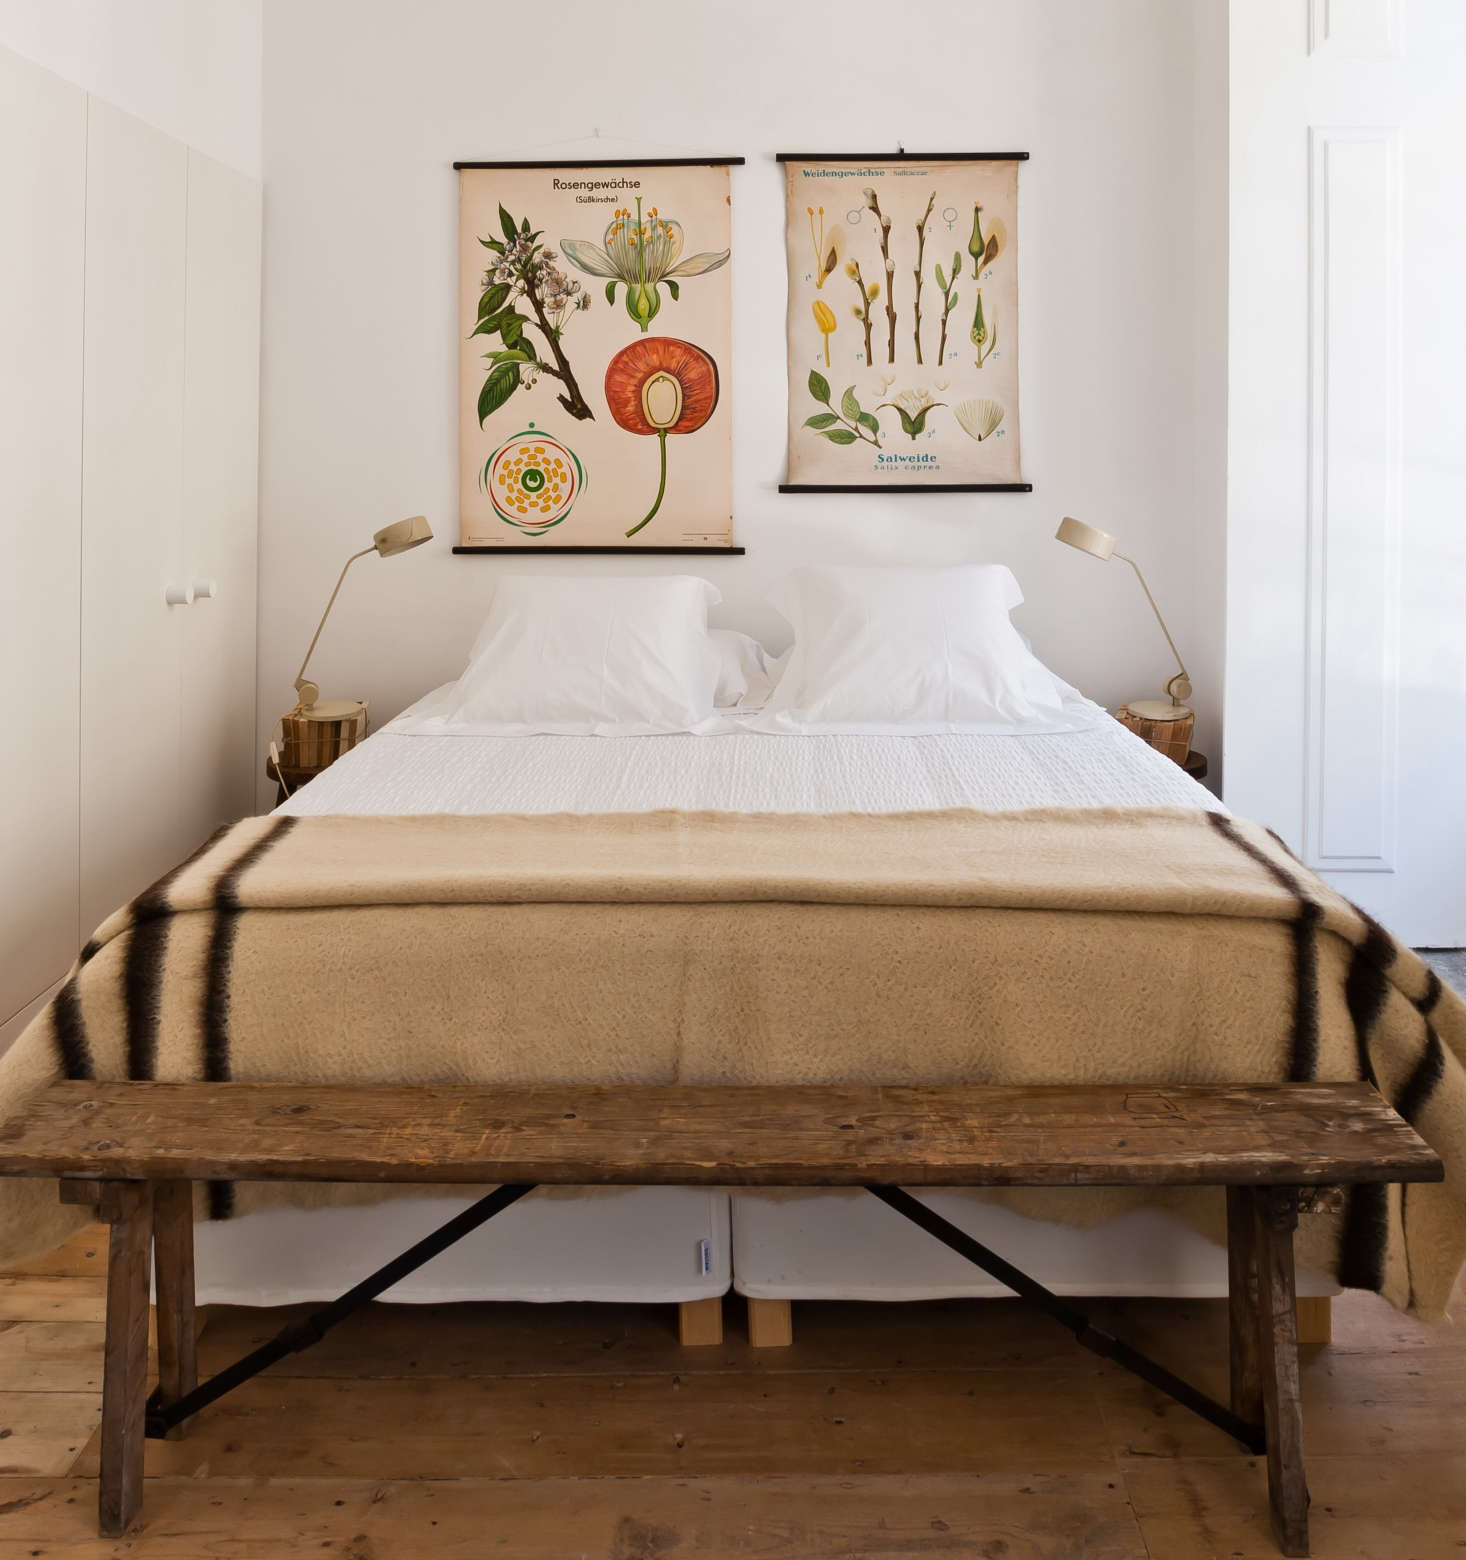 The owner of a Lisbon inn sourced bright botanical charts, originally from a German primary school, from a shop in Madrid and hung them as posters. SeeSteal This Look: A Portuguese Bedroom with Vintage Charm.